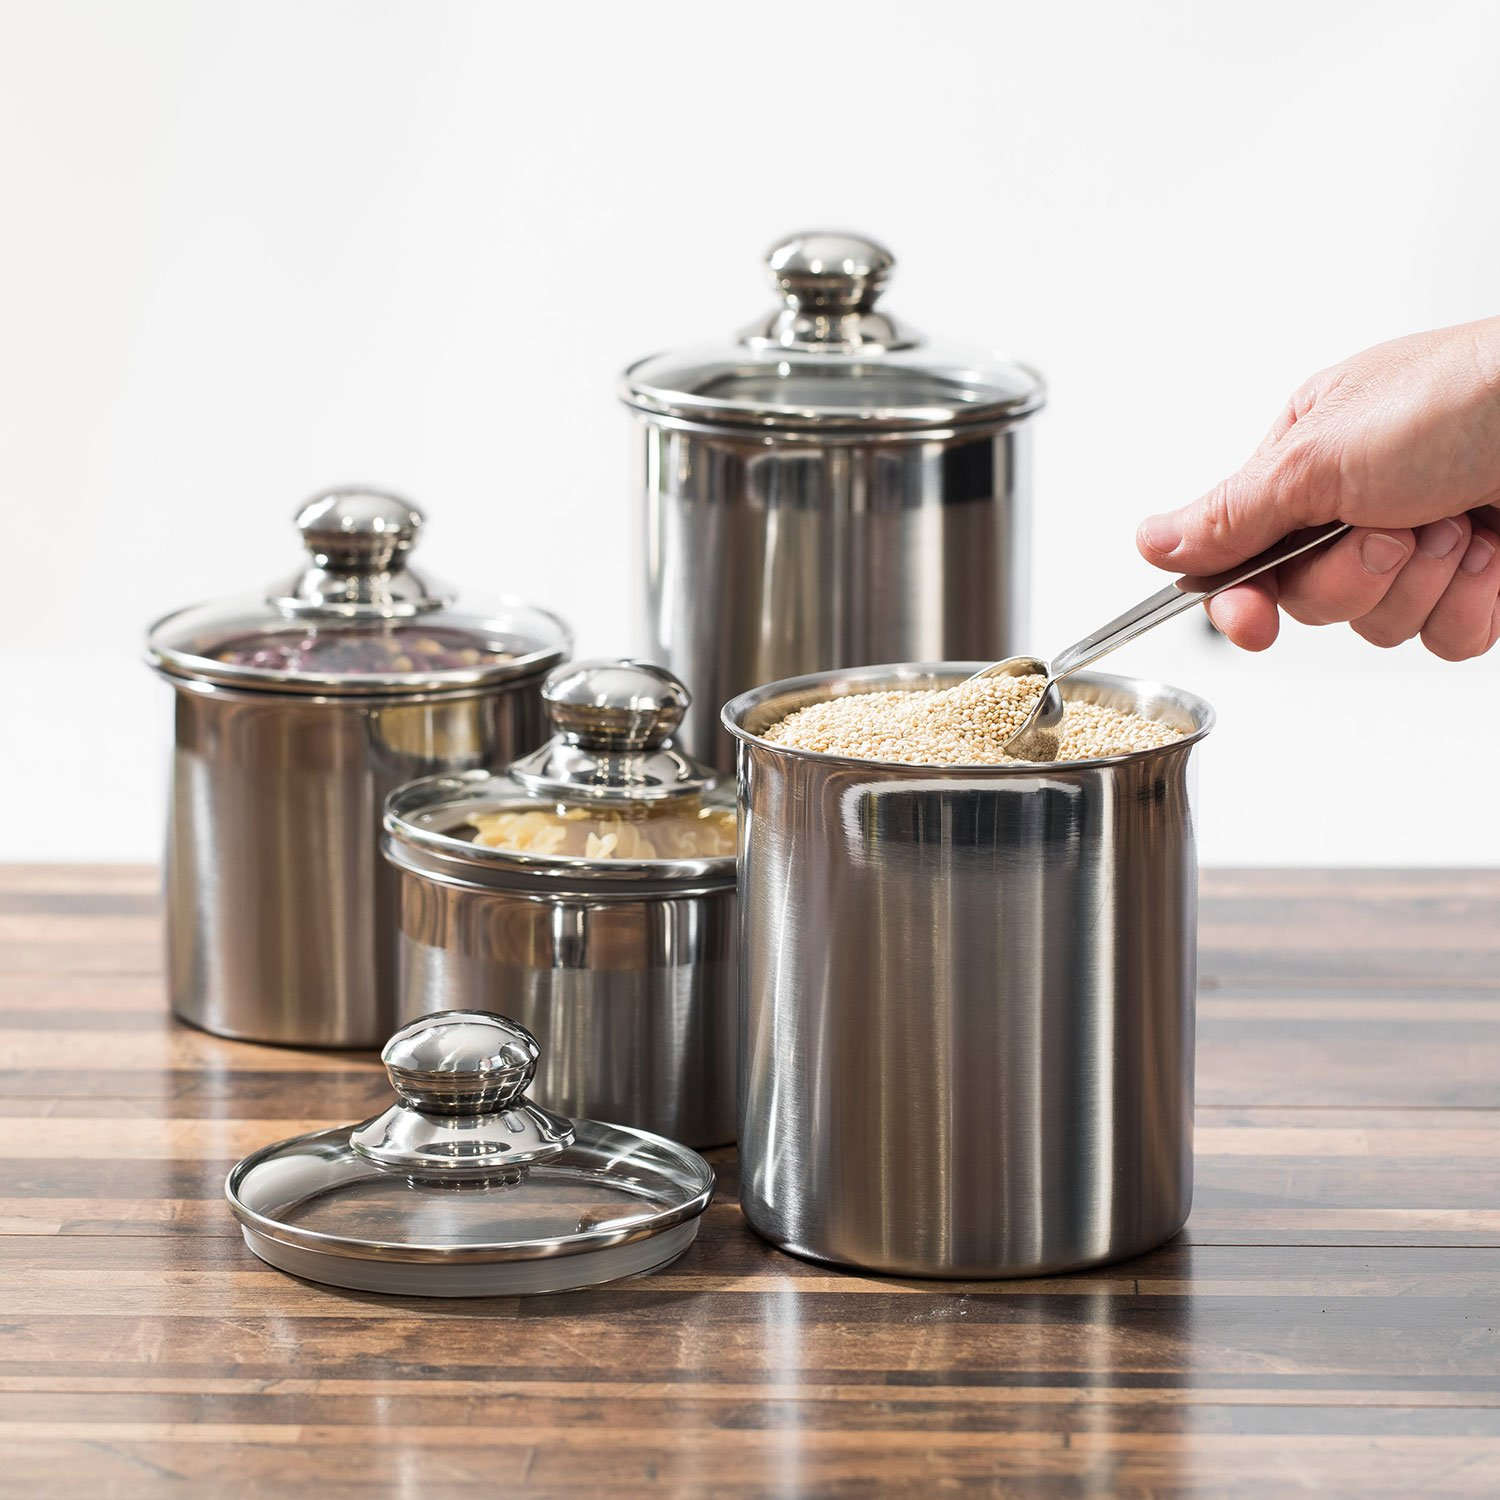 canisters sets for the kitchen beautiful canisters sets for the kitchen counter small sized 4 piece stainless ebay 9336